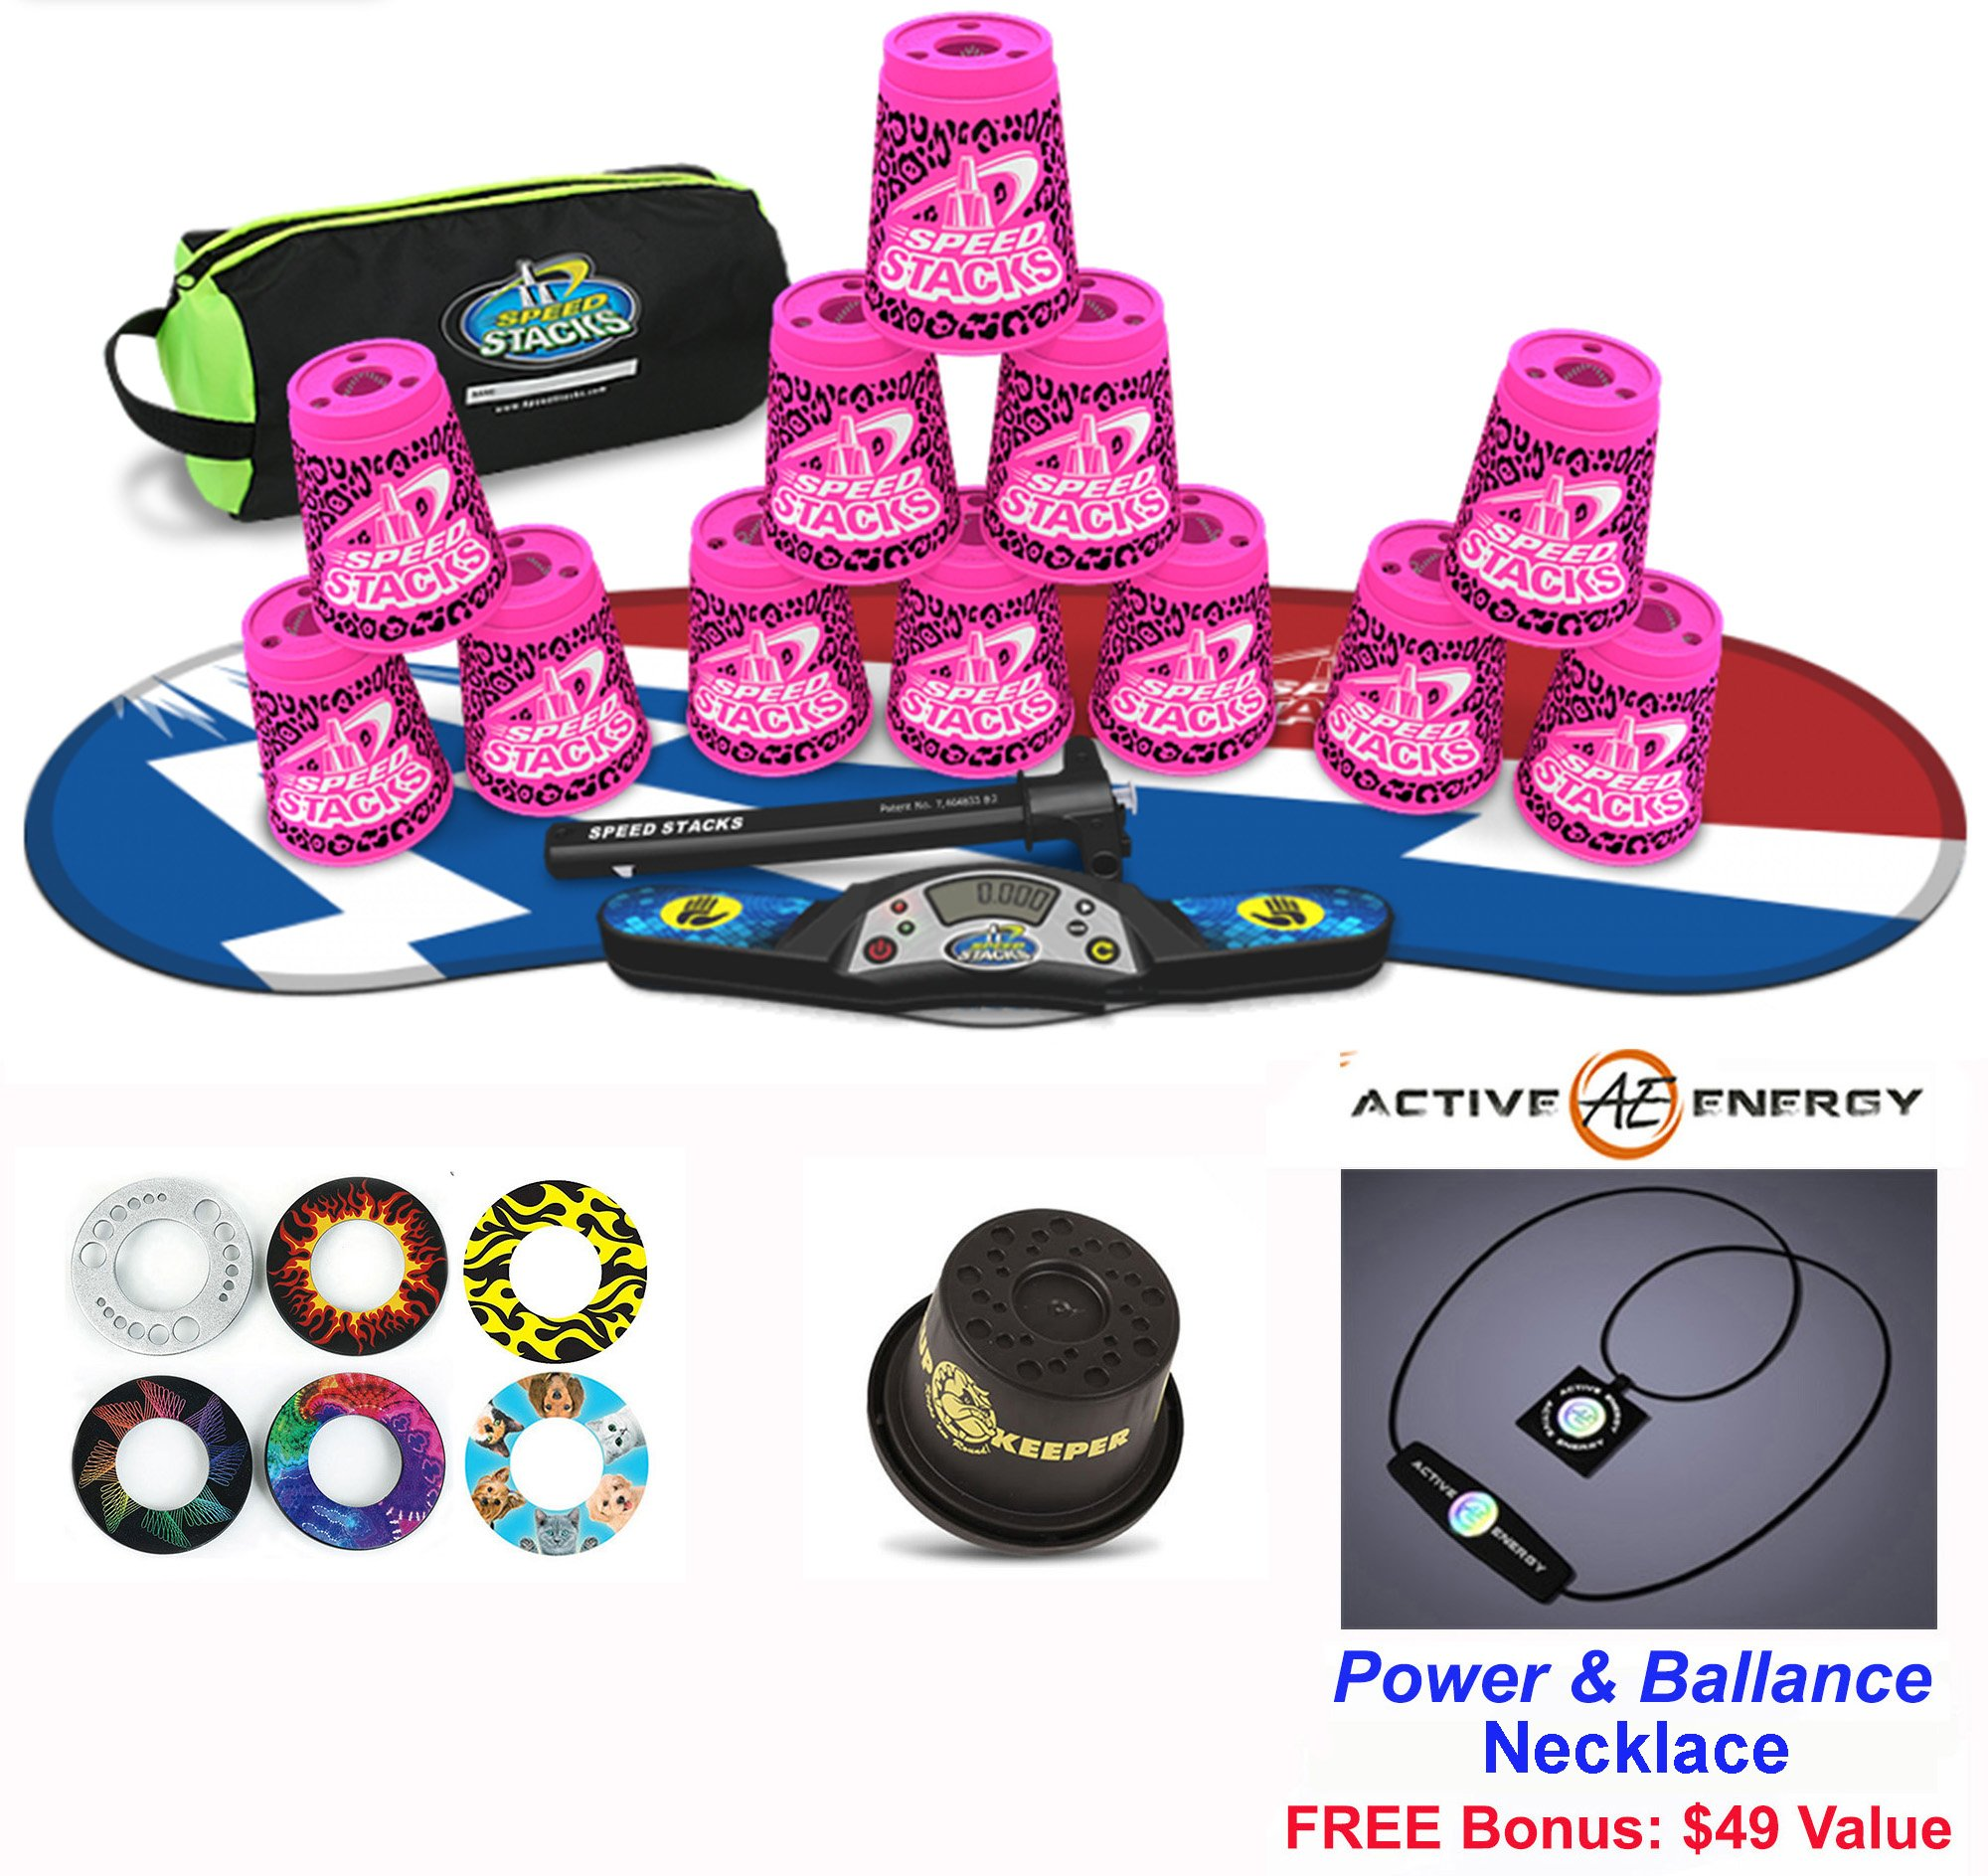 Speed Stacks Combo Set 'The Works'': 12 ZIPPY LEOPARD 4'' Cups, Atomic Punch Gen 3 Mat, G4 Pro Timer, Cup Keeper, Stem, Gear Bag + Active Energy Necklace by Speed Stacks